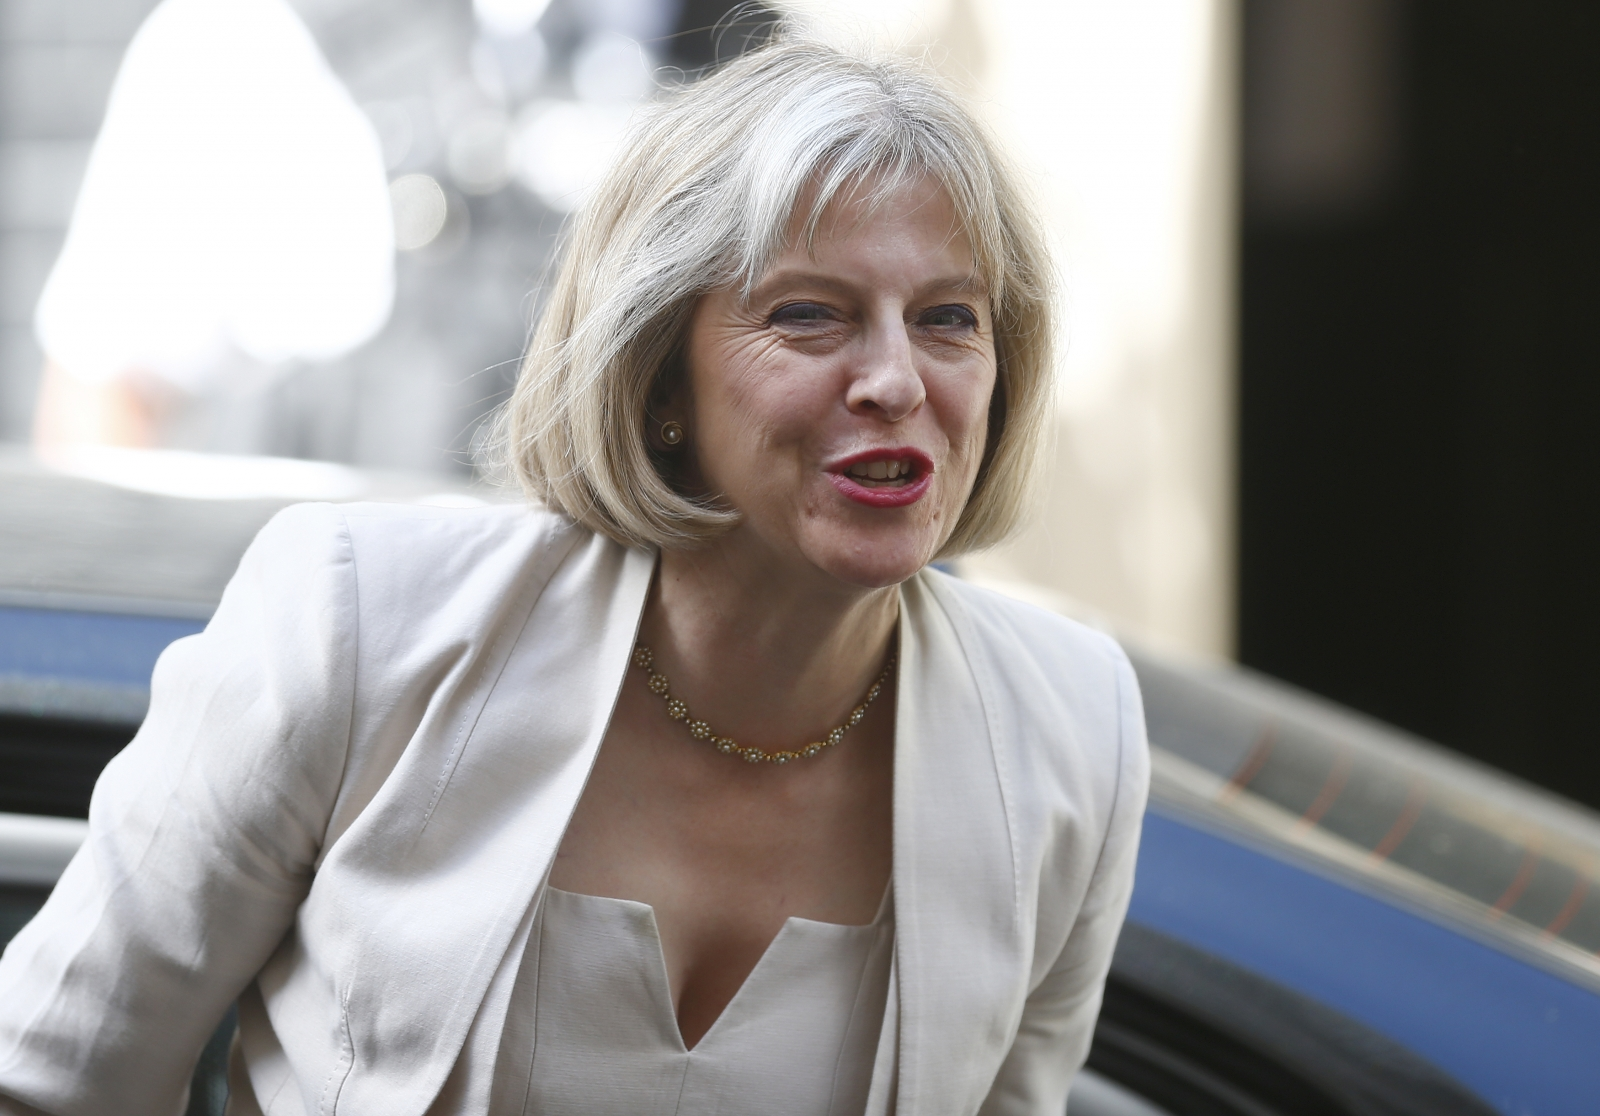 Home Secretary Theresa May poised to announce fresh laws to combat British jihadists